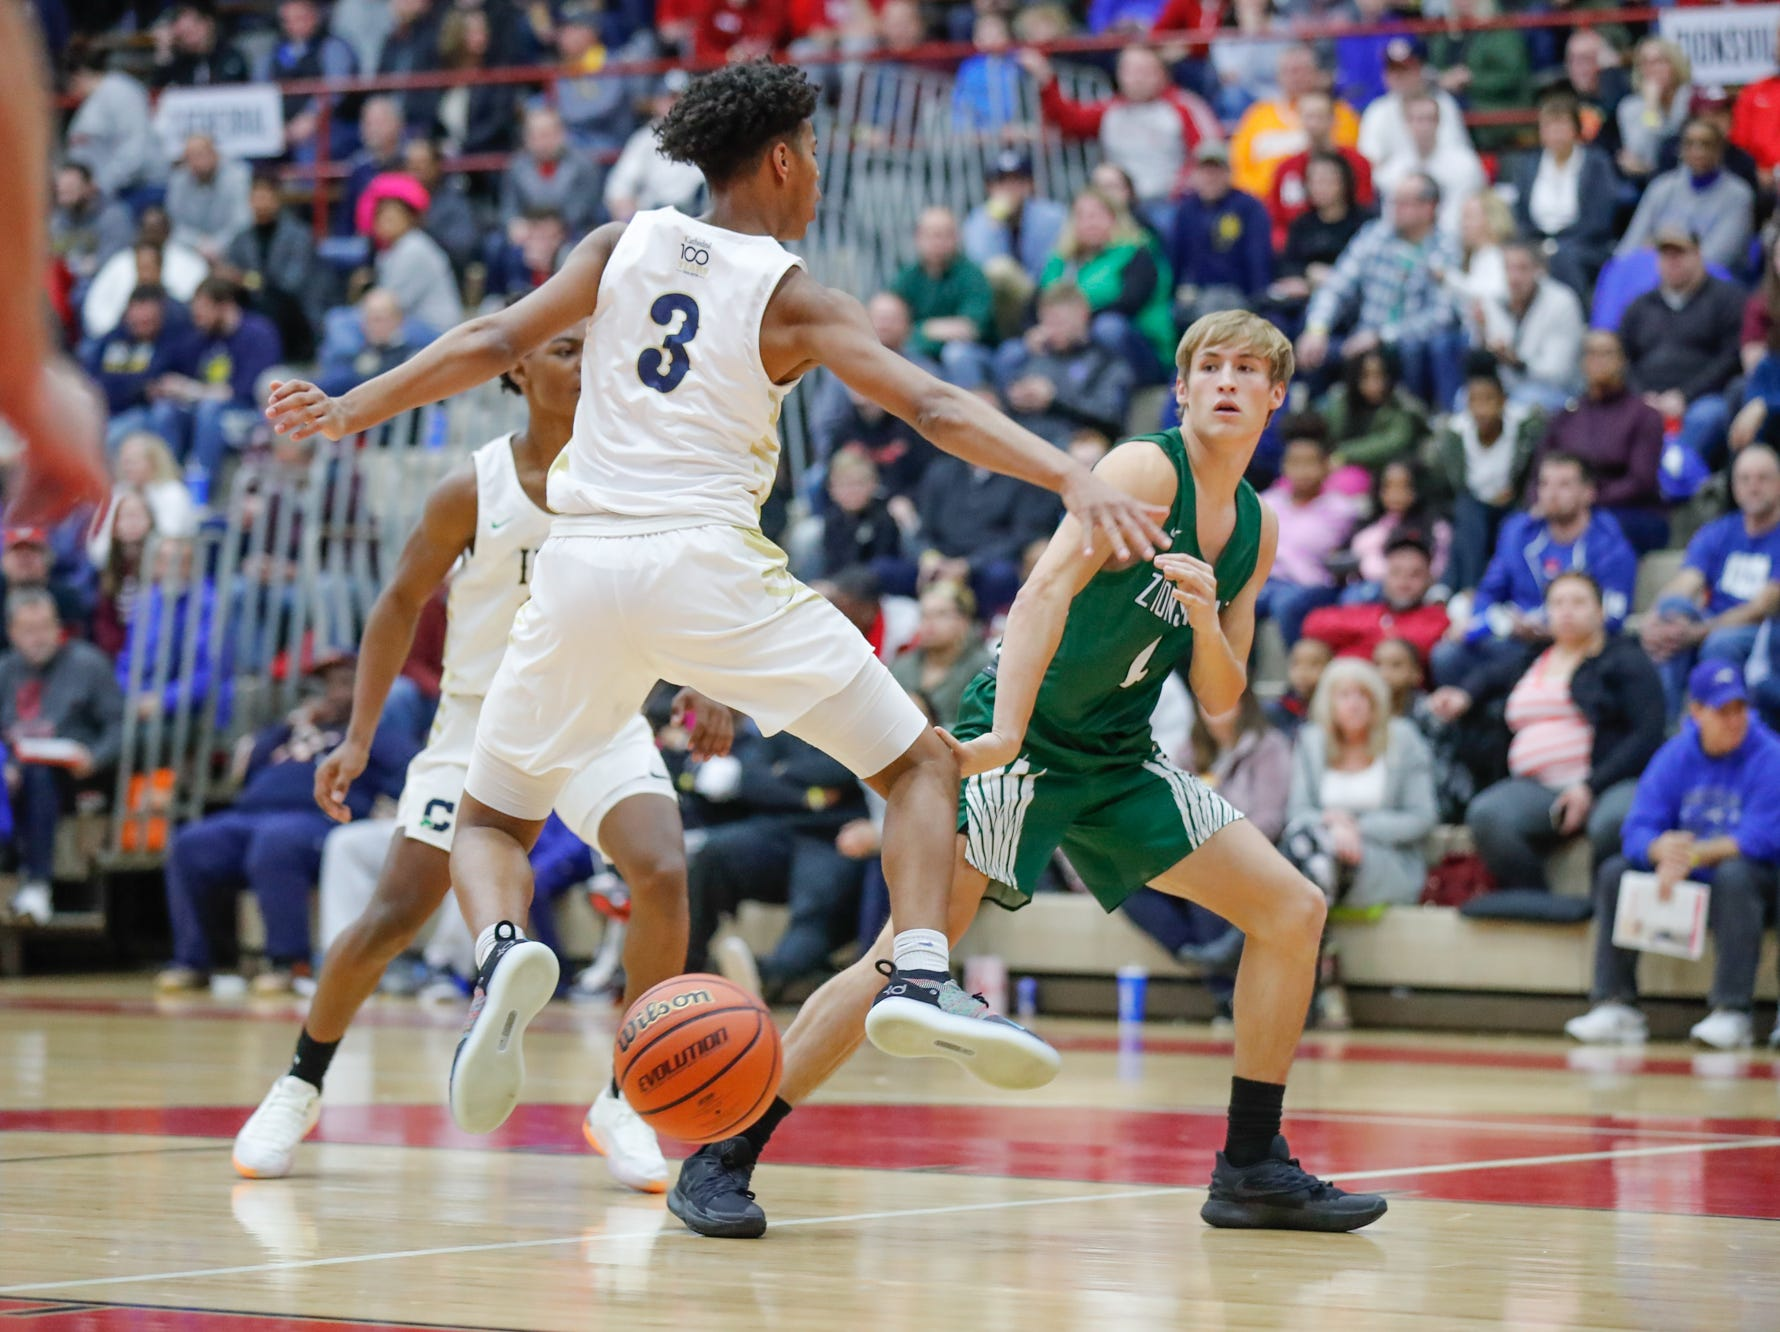 Zionsville Community High School's guard Ben Weidner (4) passes the ball around Cathedral high School's Grant Taueg (3) and Tayshawn Comer (12), during a Tip Off Classic game between Cathedral High School and Zionsville Community High School, held at the Southport Fieldhouse, on Saturday, Dec. 8, 2018.